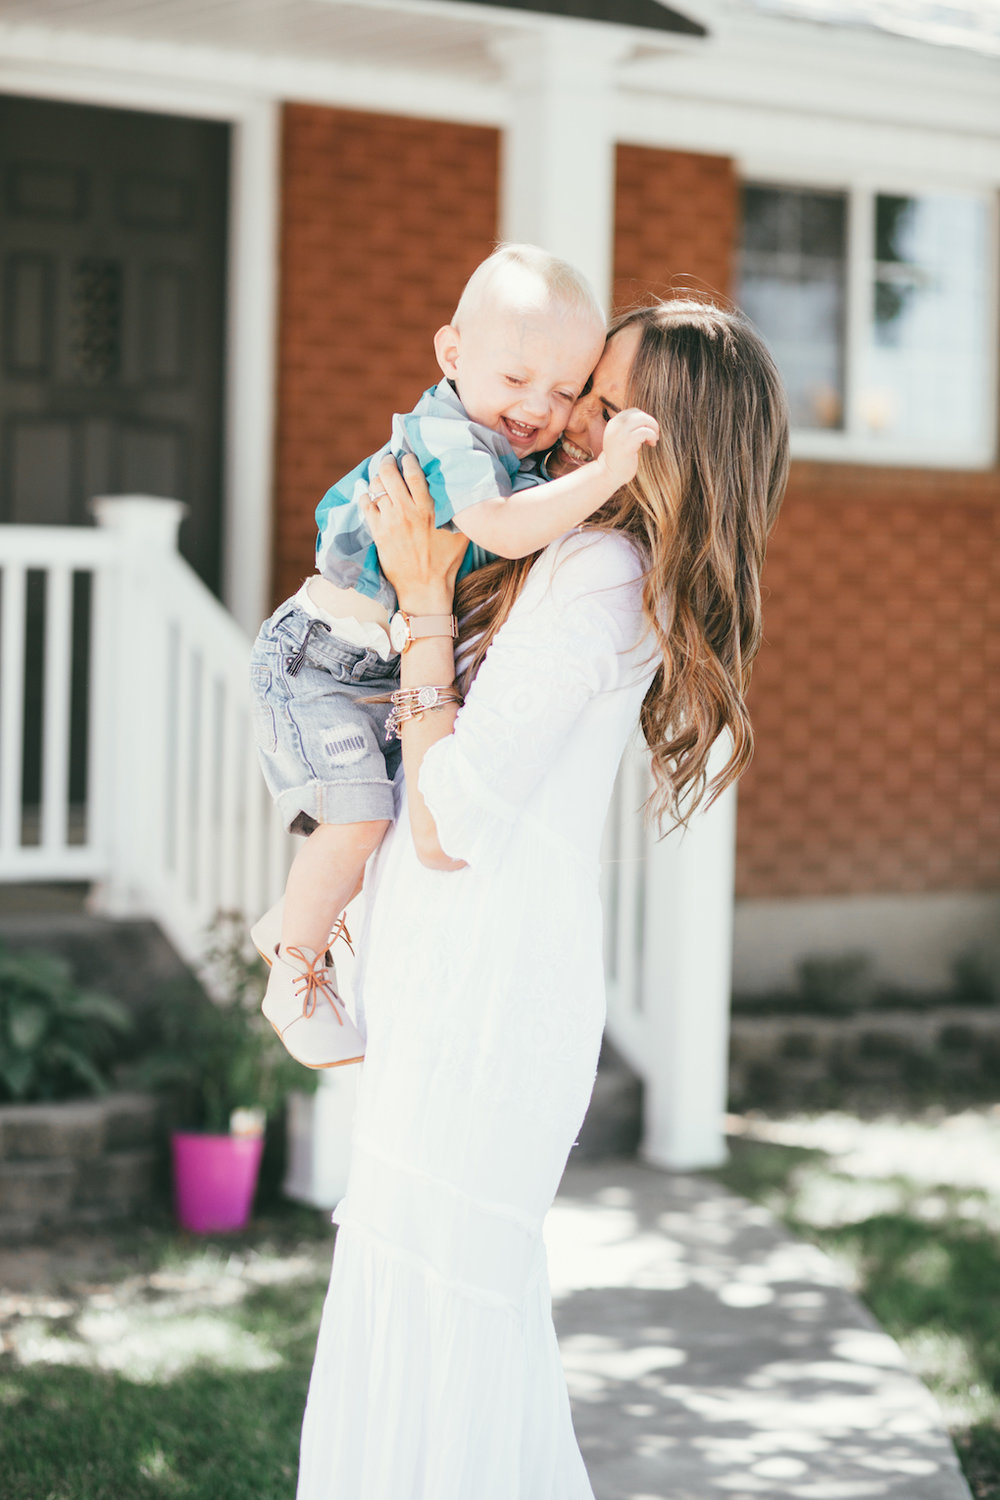 Moments with Moms: Dani Marie Krum